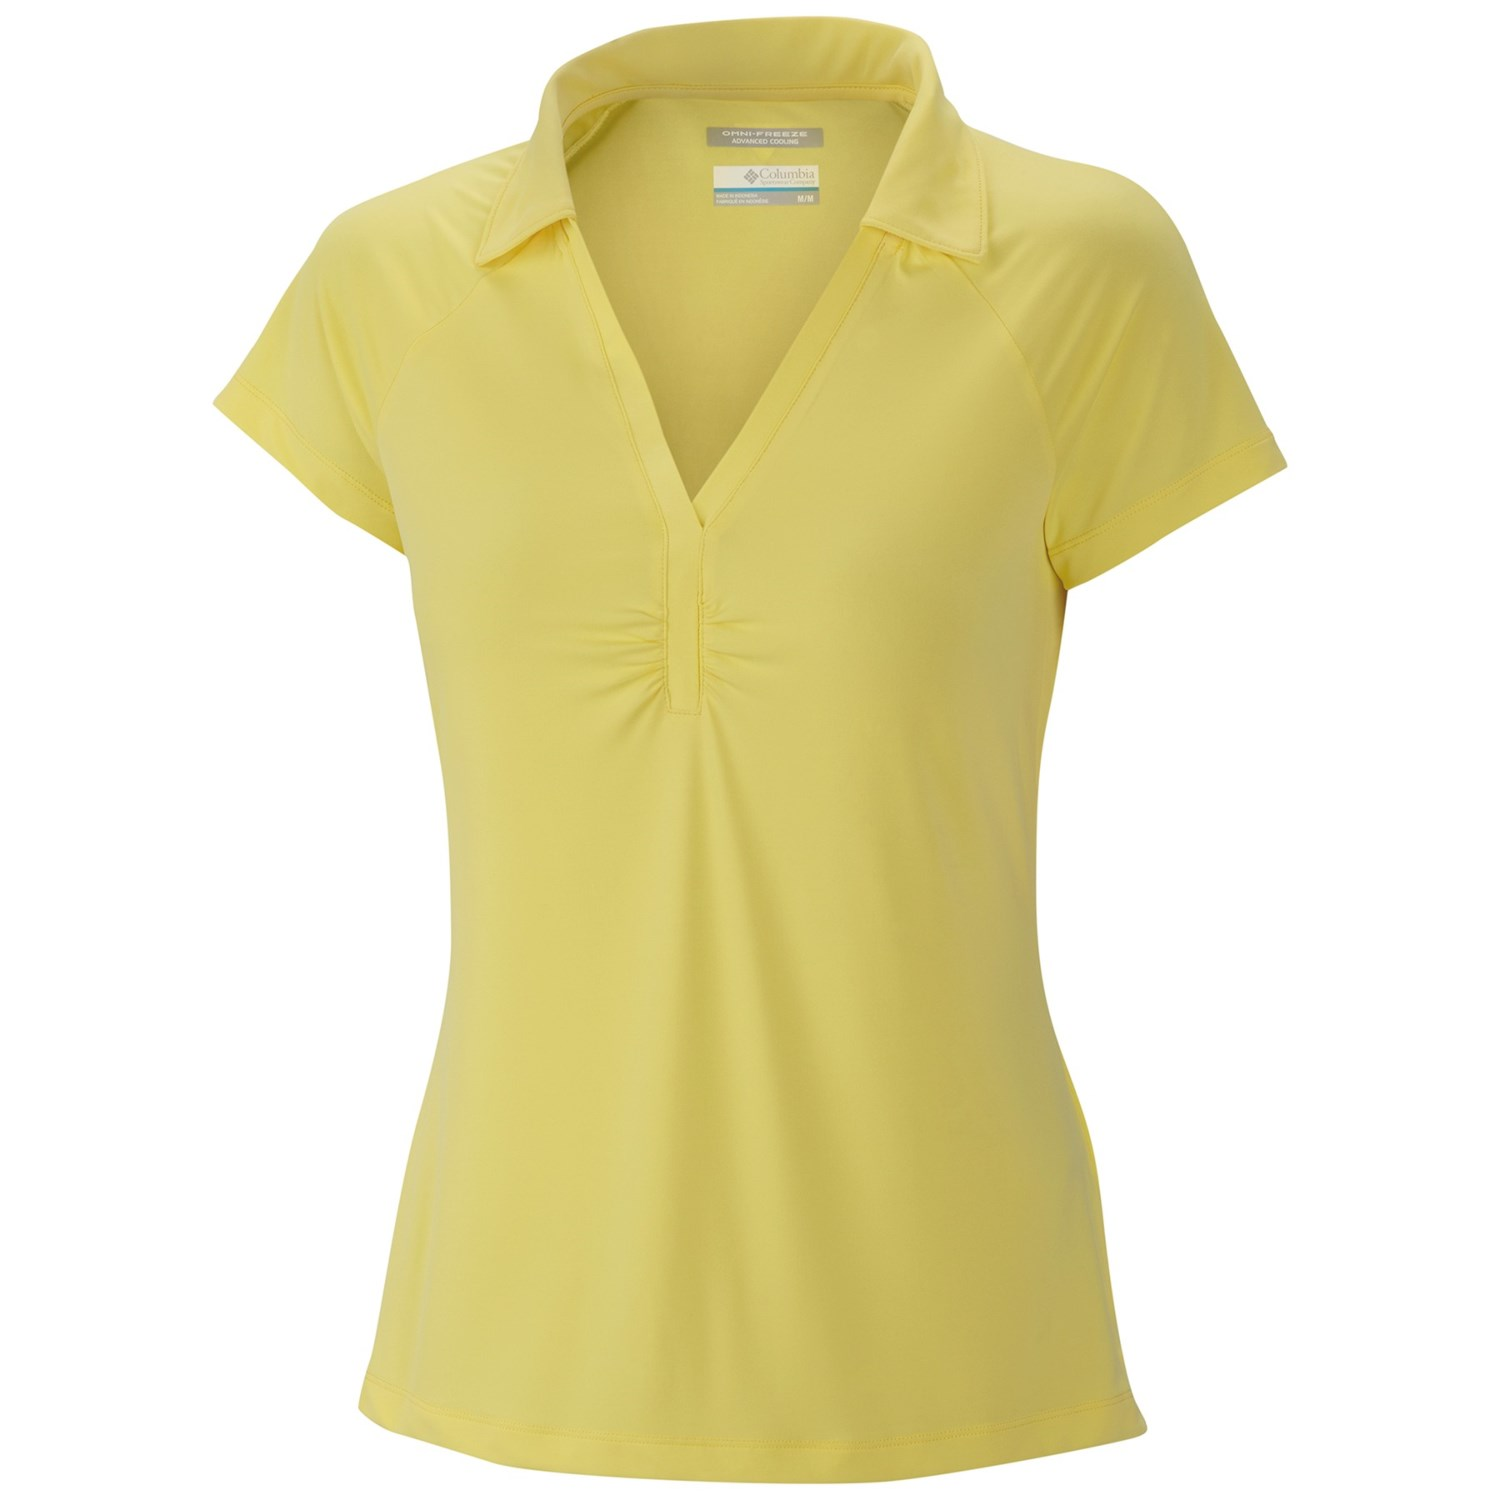 Columbia sportswear pfg freezer iii polo shirt upf 50 for Columbia shirts womens pfg